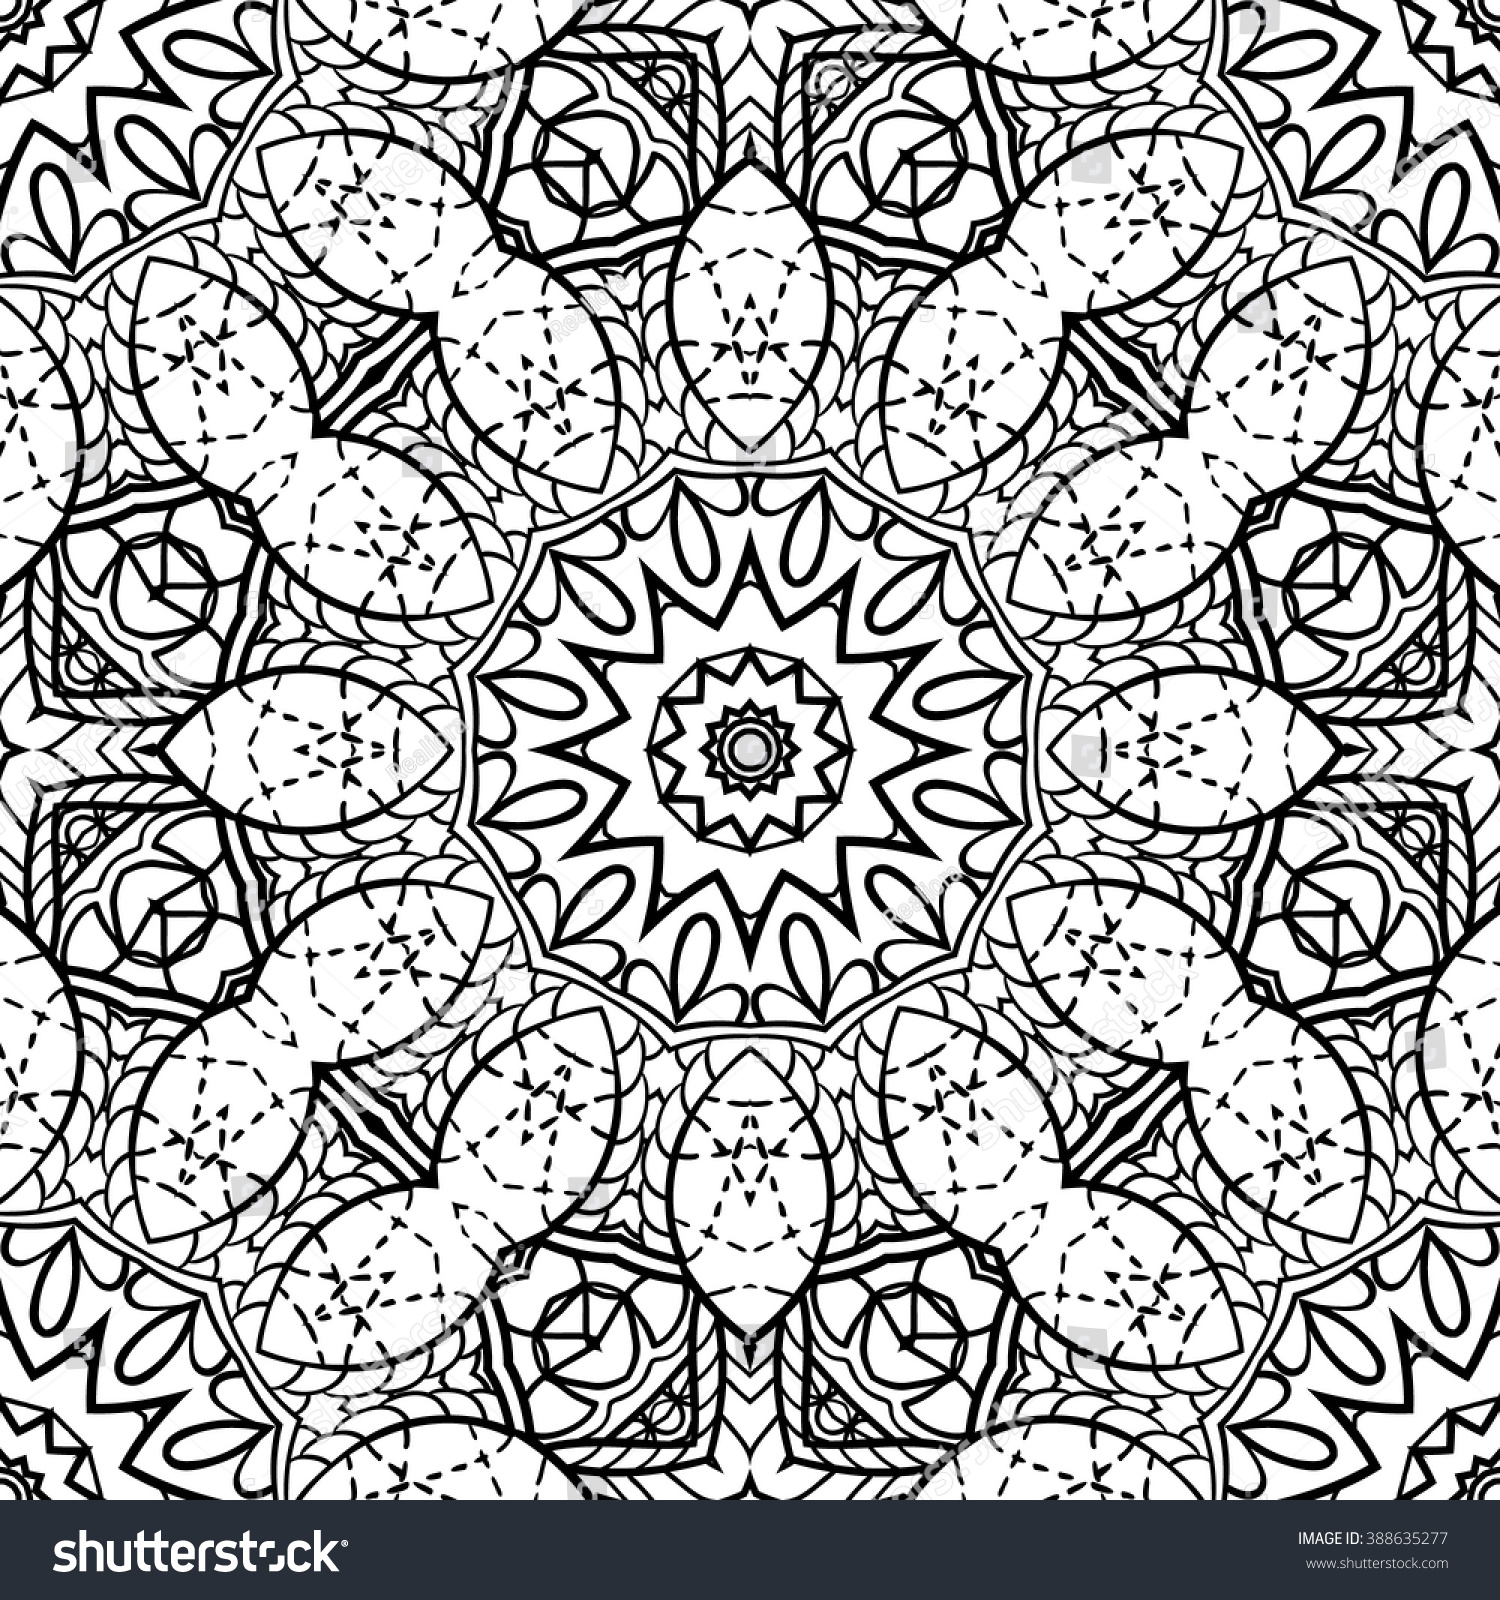 Zendoodle Coloring Pages Adult Coloring Page Semless Zendoodle Vector Stock Vector